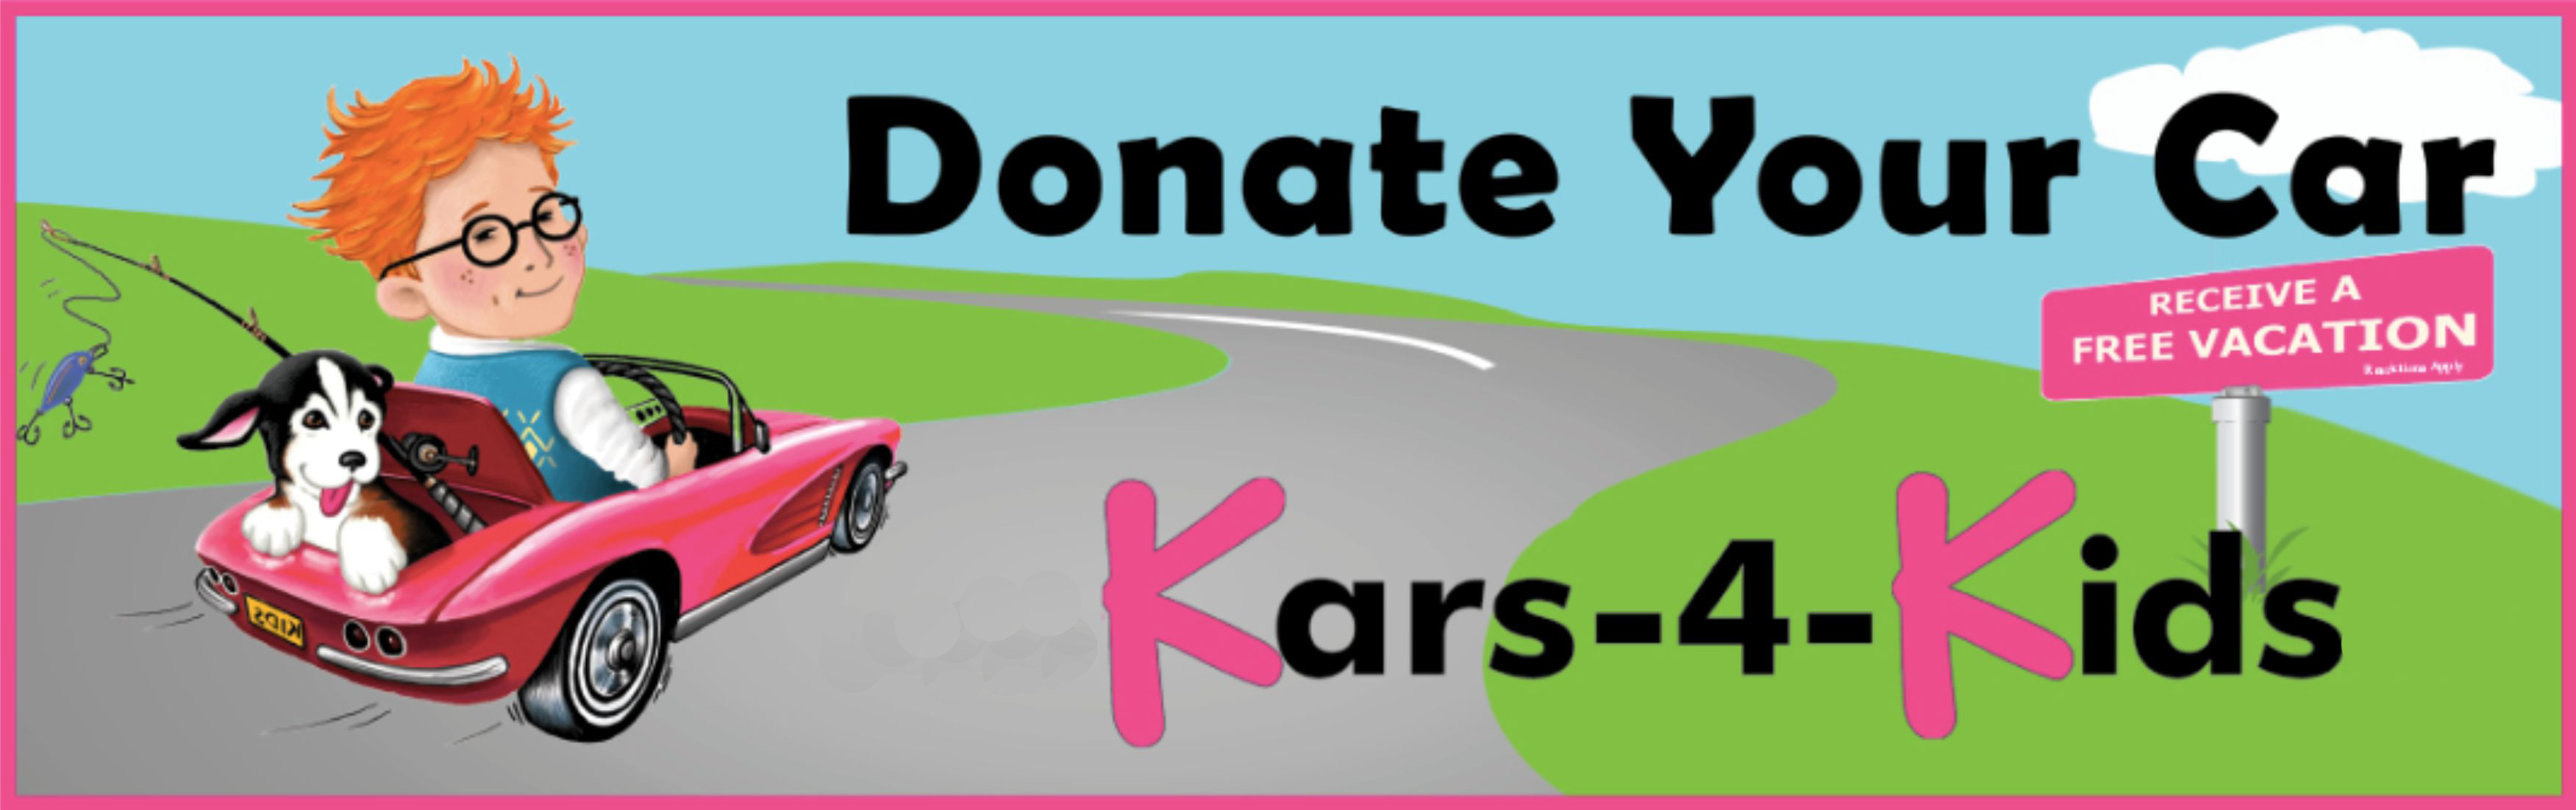 Donate your car for kids 14